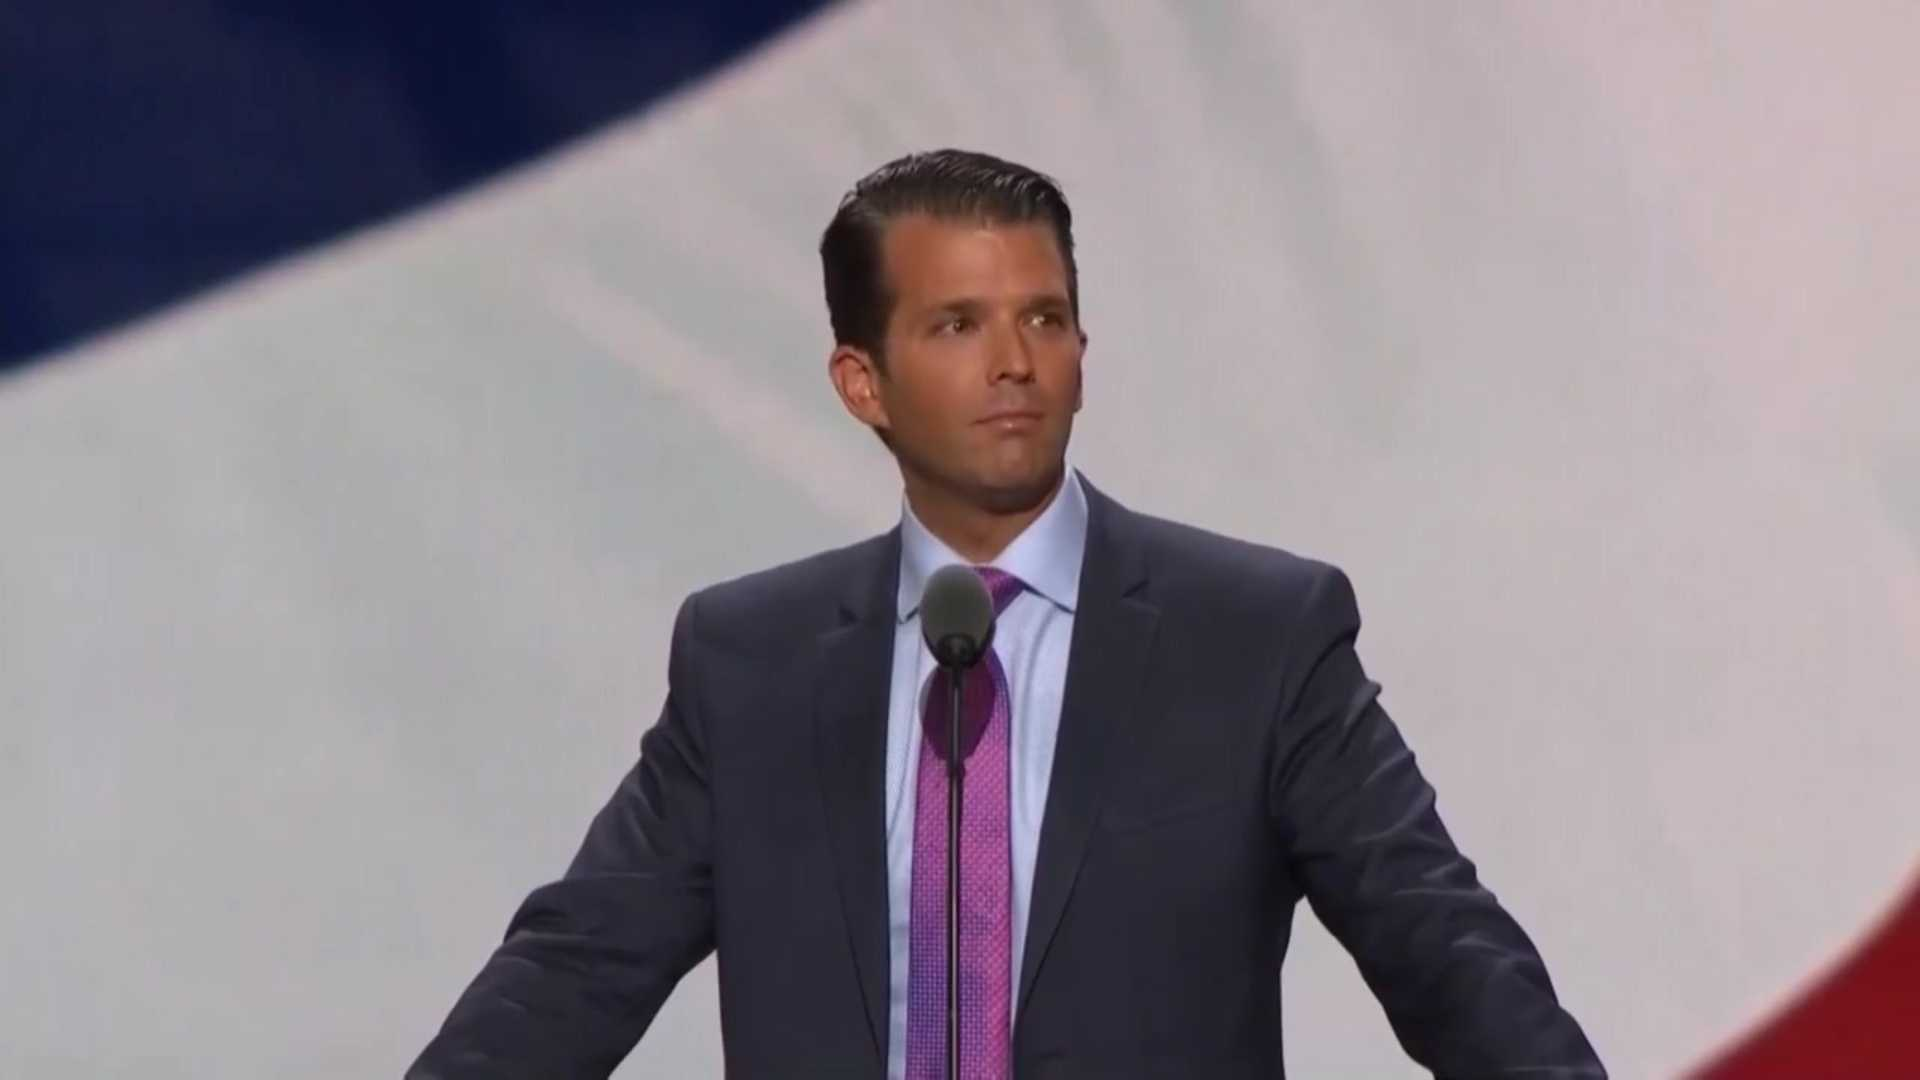 Donald Trump Jr. spoke at the Republican National Convention on Tuesday, July 19, 2016.